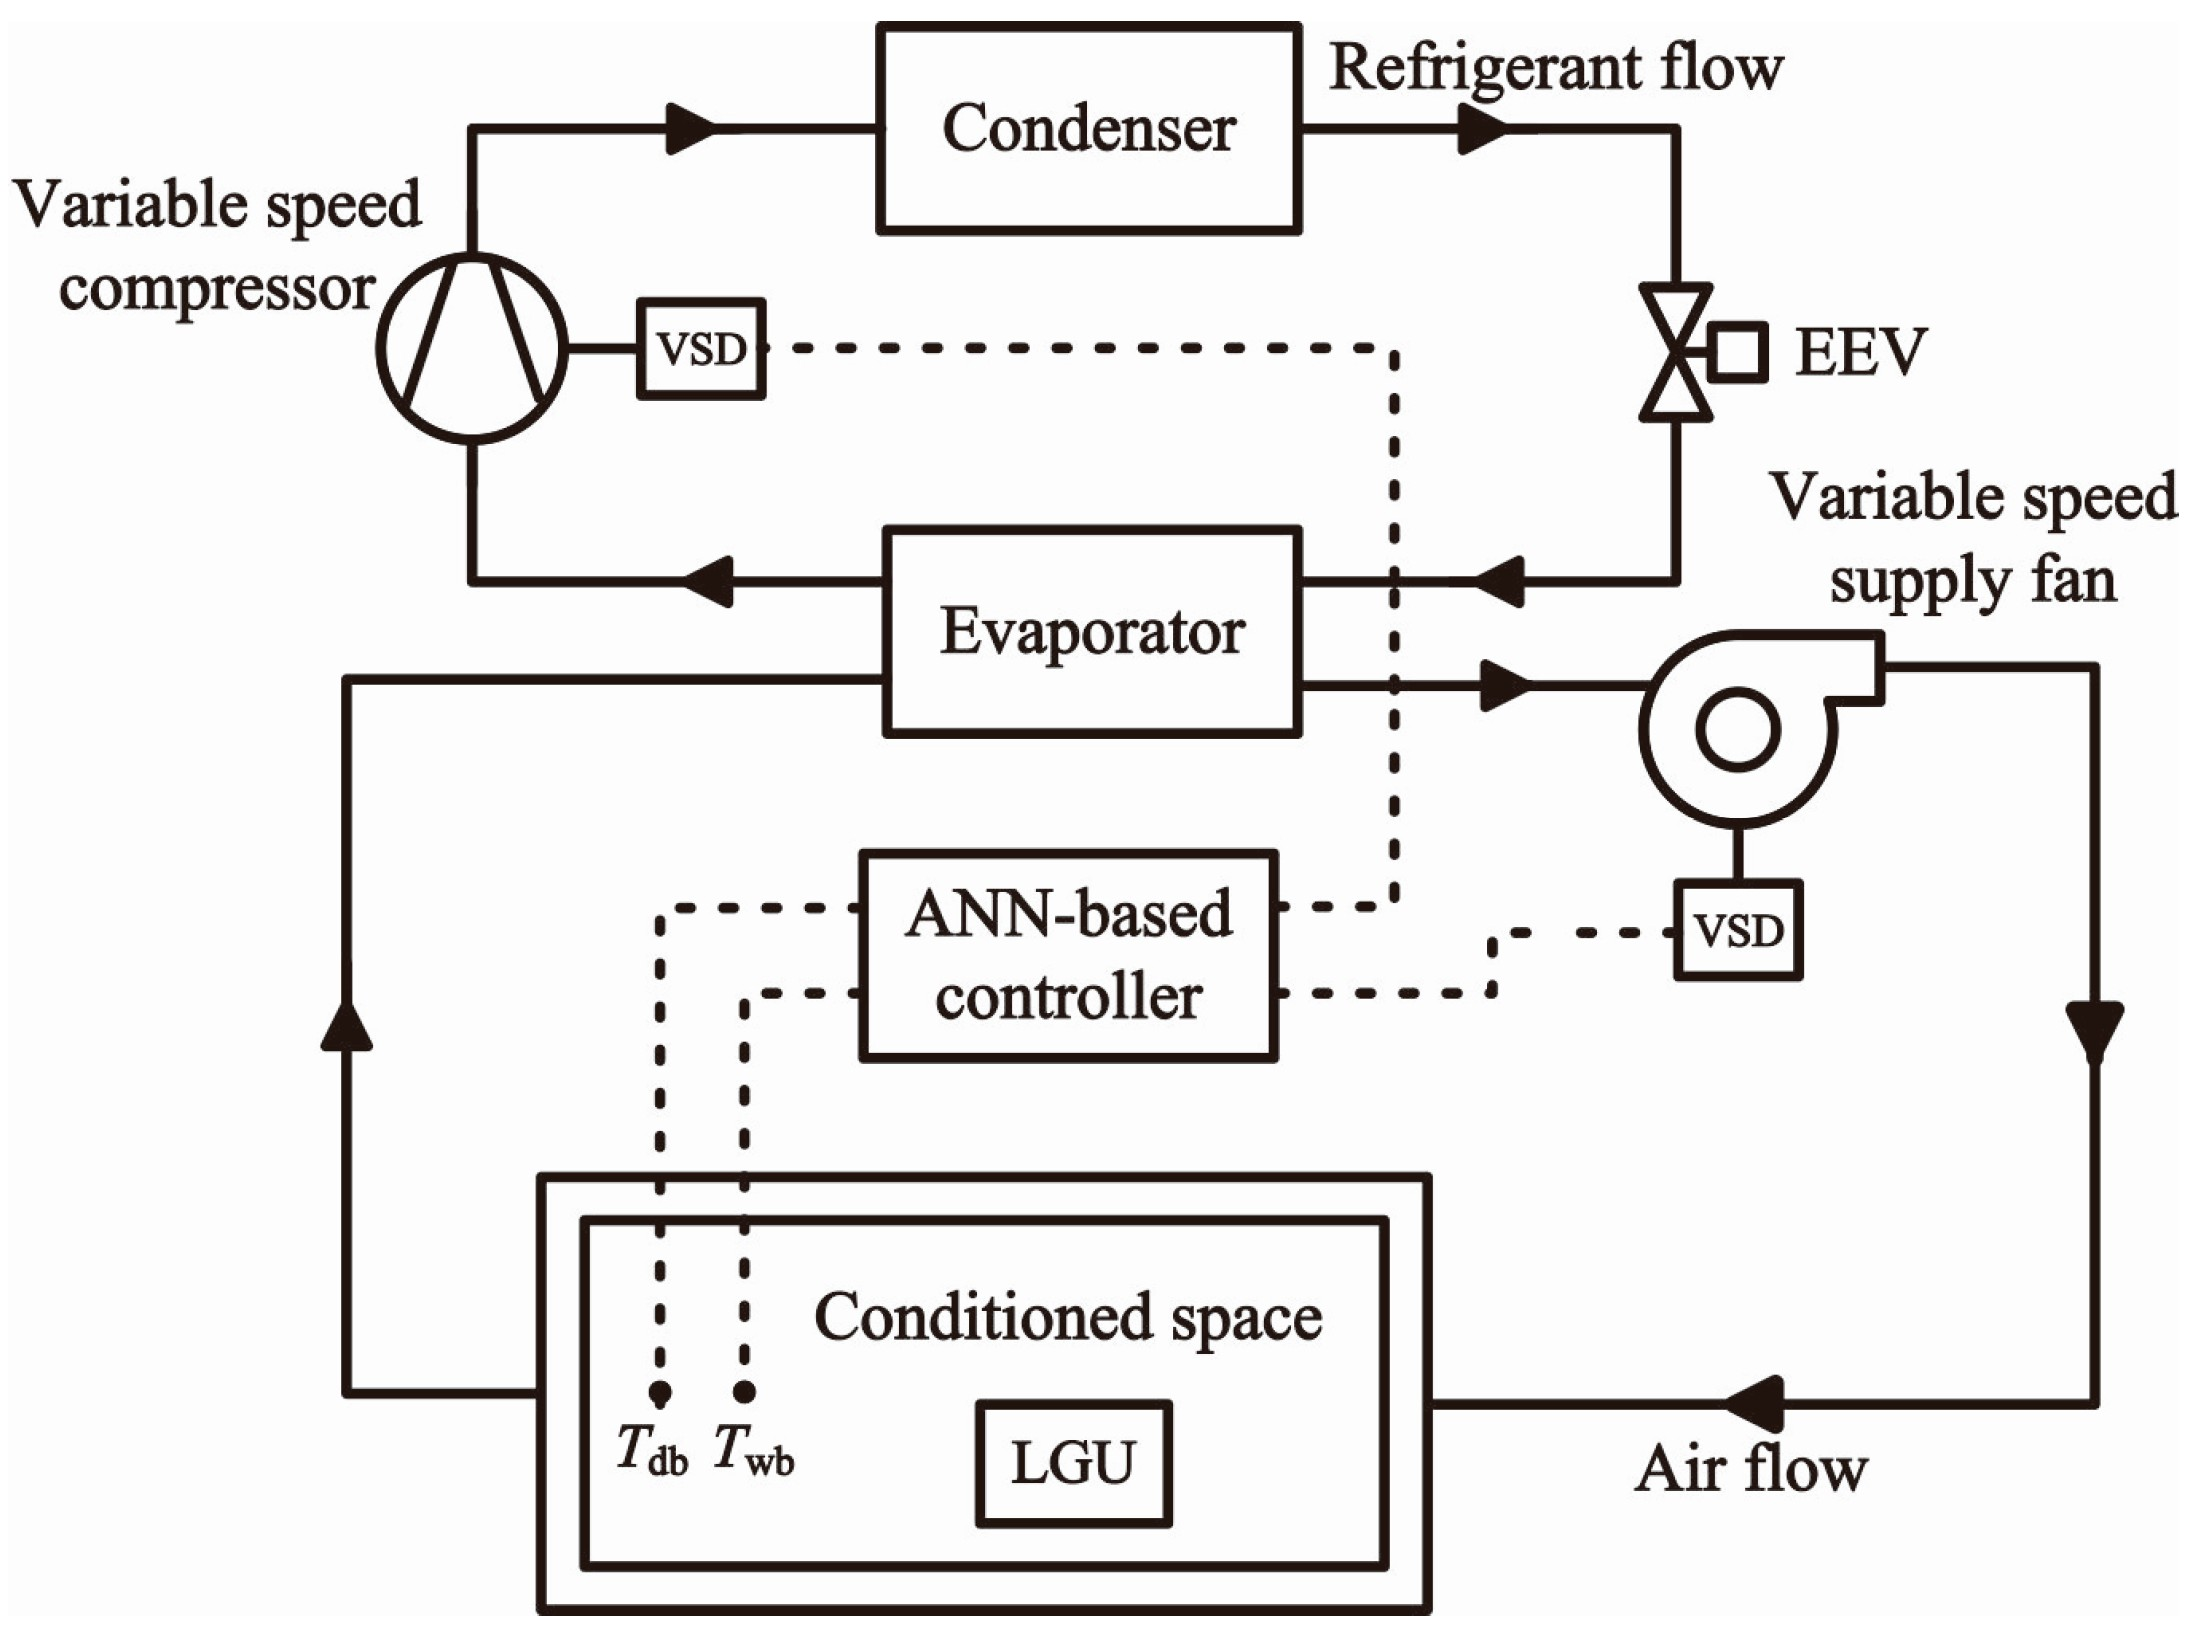 Auto Air Conditioner Diagram Energies Free Full Text Of Auto Air Conditioner Diagram